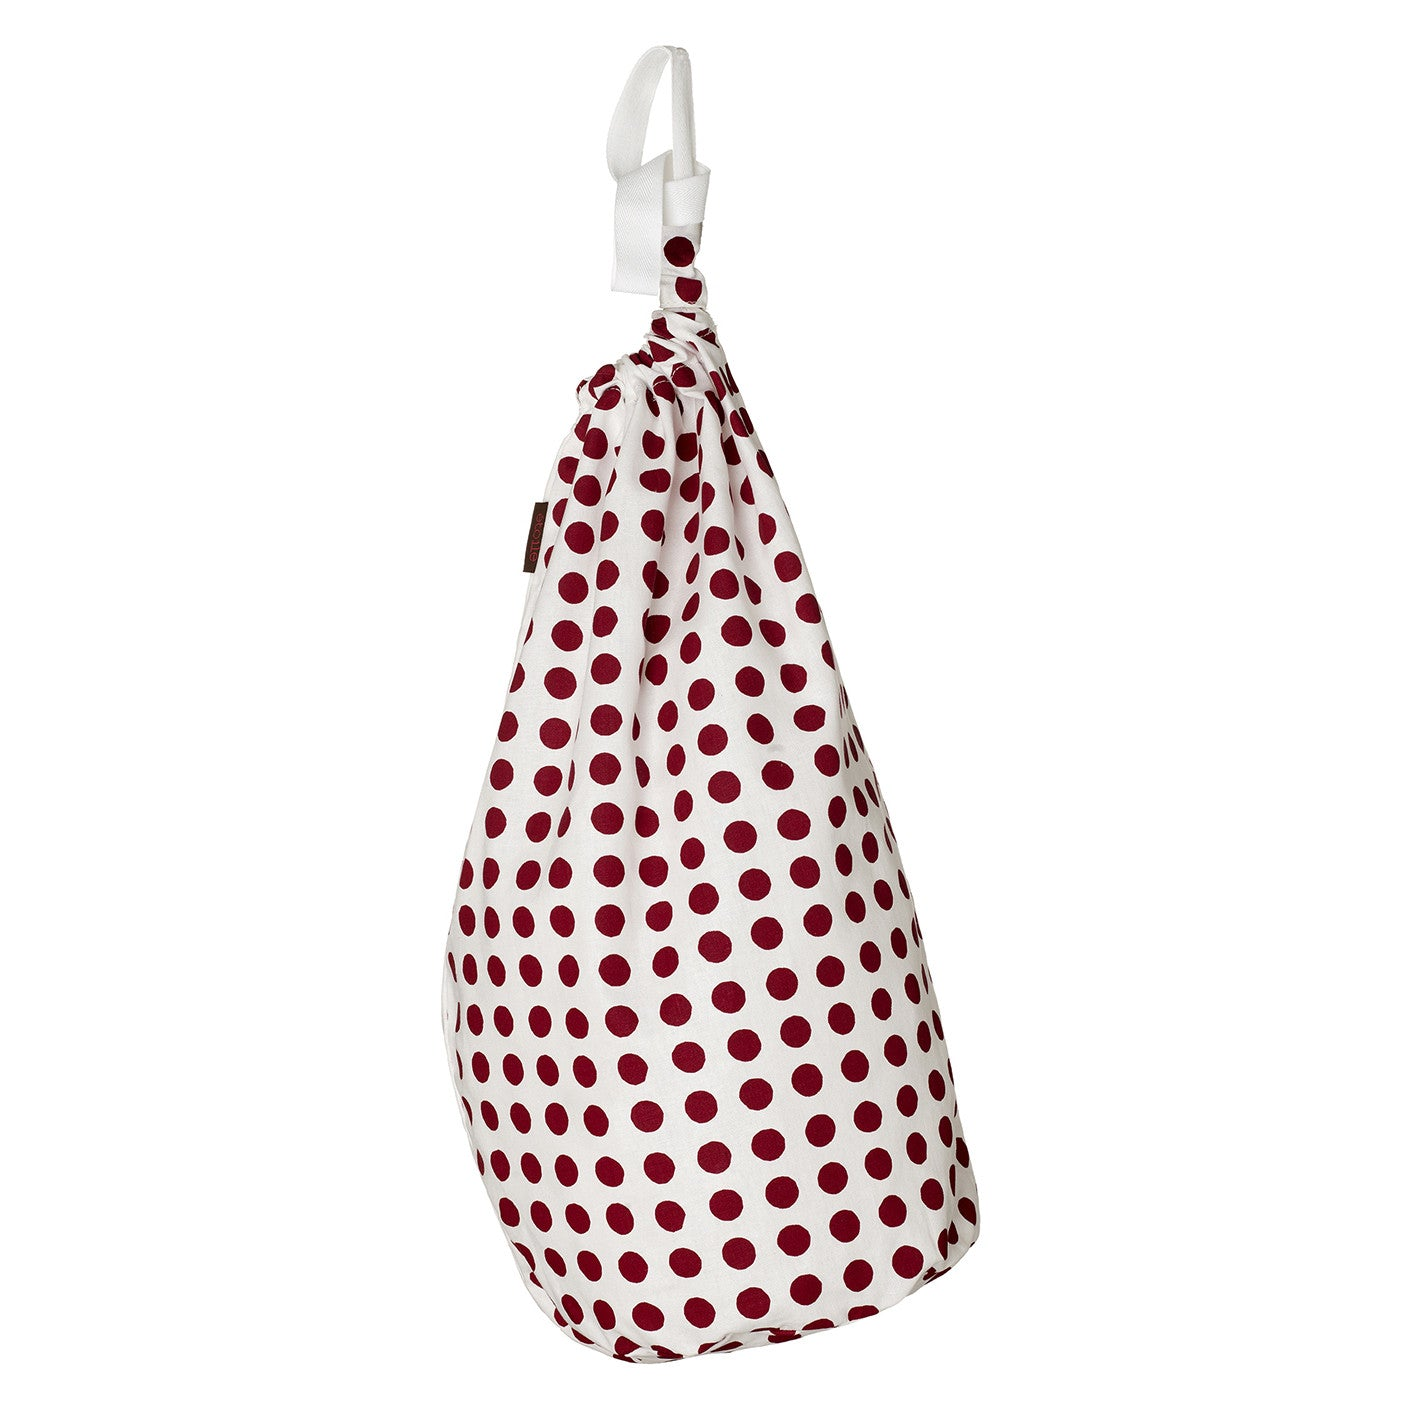 London Polka Dot Pattern Laundry & Storage Bag in Dark Vermilion Red